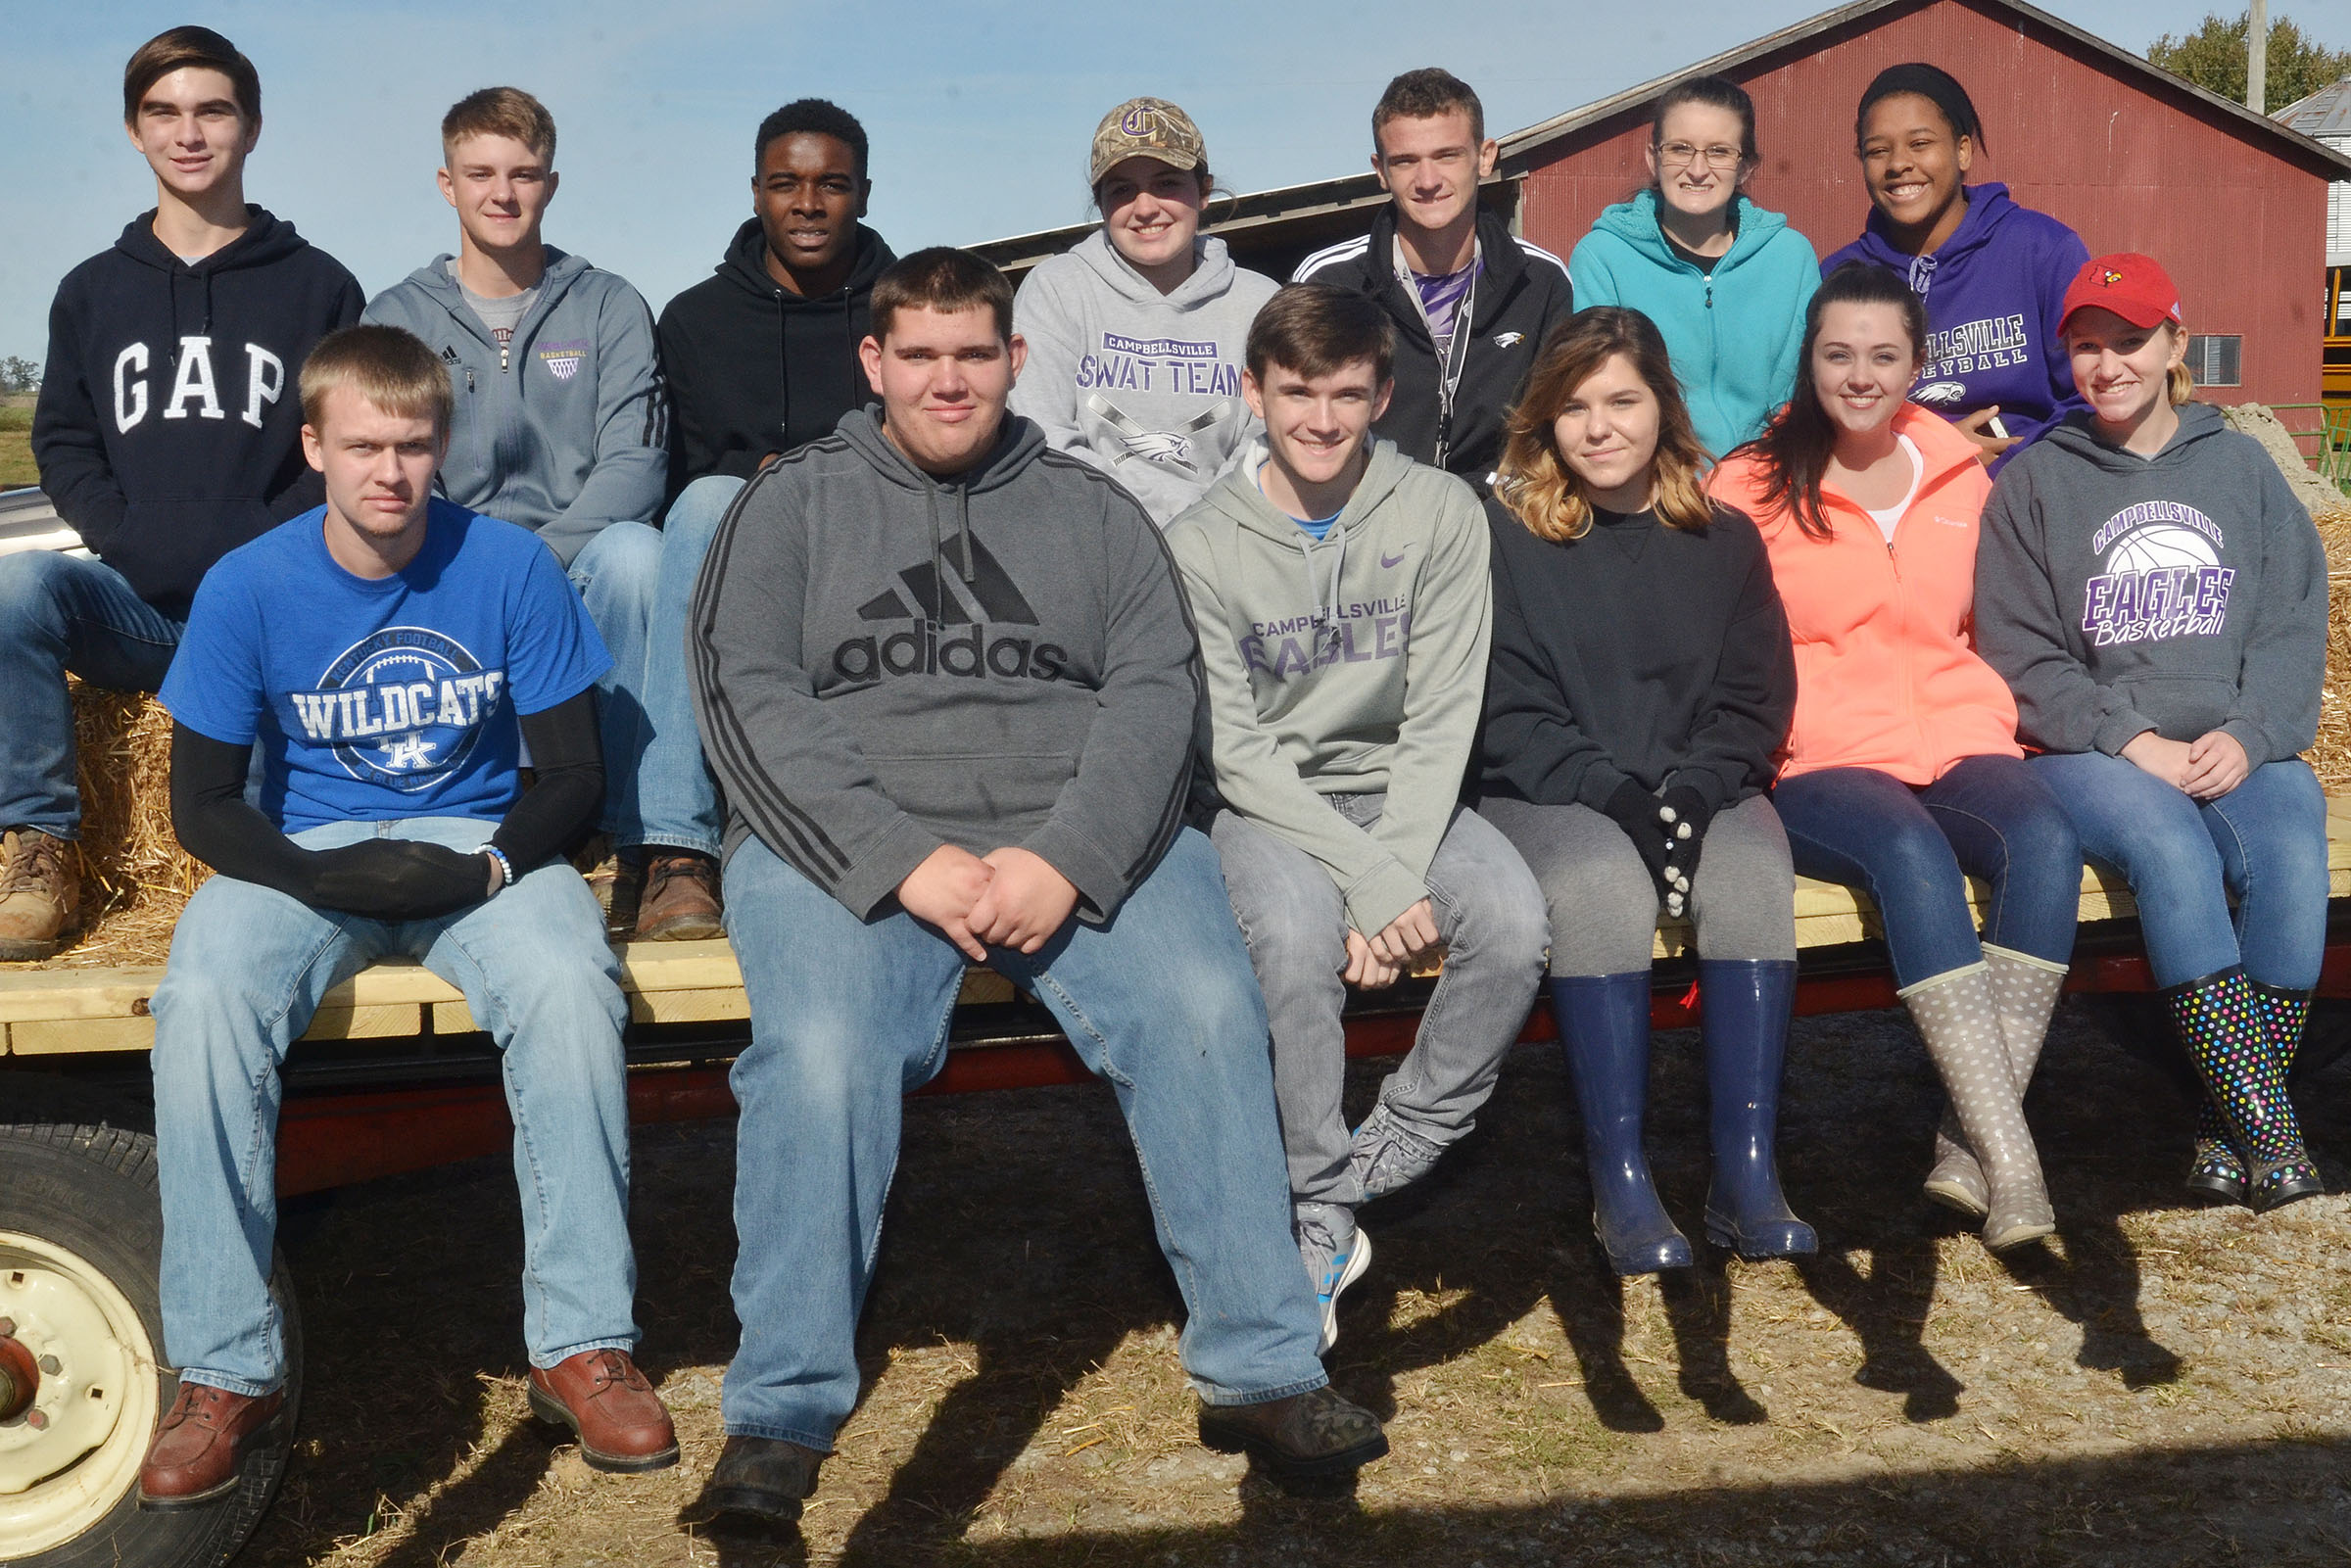 CHS juniors attending Agriculture Day are, from left, front, Wyatt Houk, Ryan Wiedewitsch, Jackson Hunt, Sara Farmer, Missy Vanorder and Madison Dial. Back, Cass Kidwell, Alex Doss, Chanson Atkinson, Caitlin Bright, Connor Wilson, Kim Harden and Kayla Young.